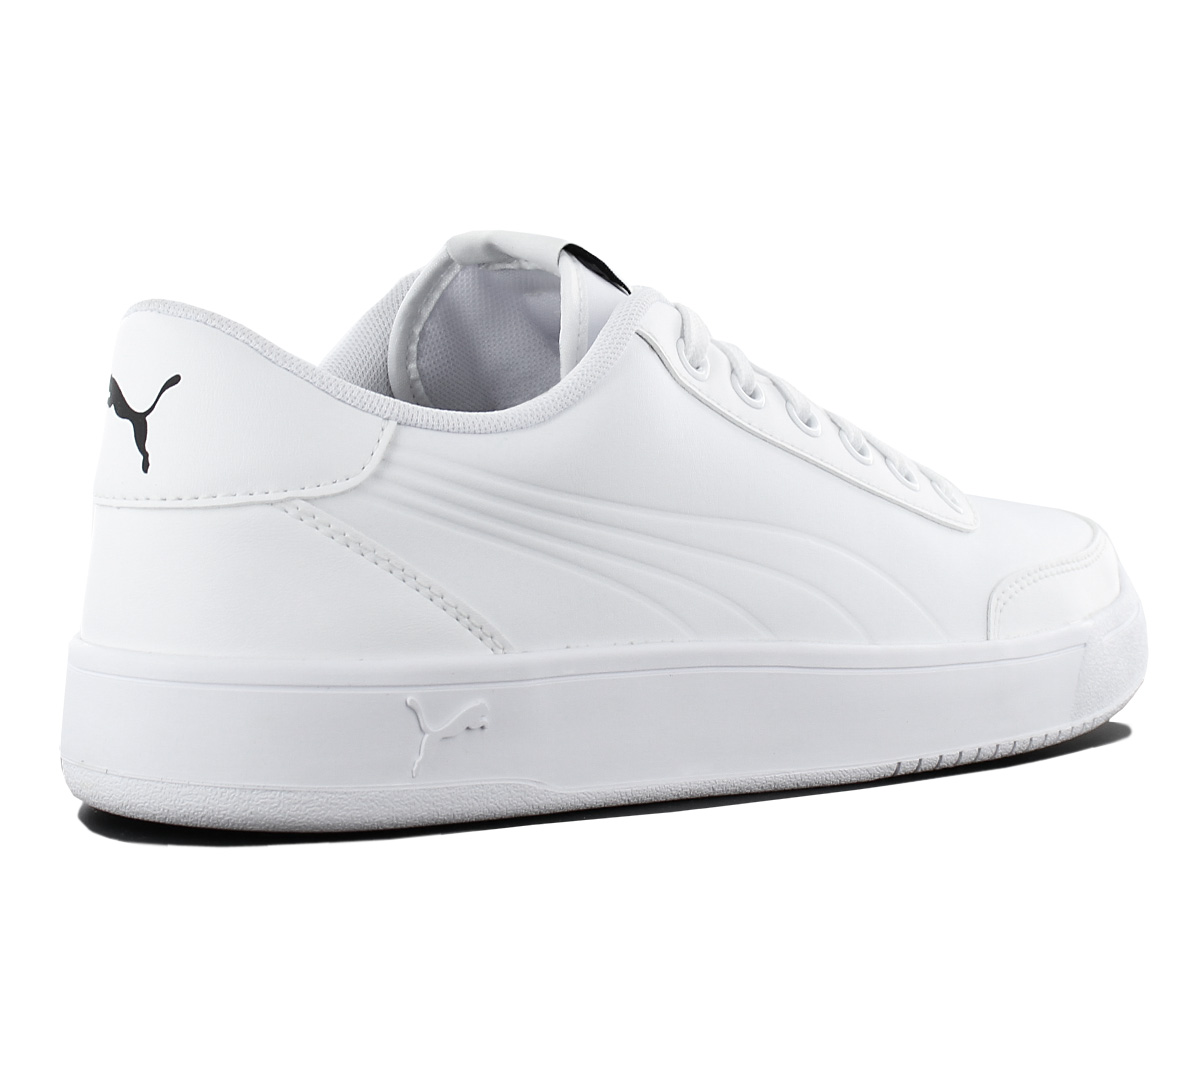 Puma Court Breaker L Mono Men s Sneakers Shoes Leather White ... 1732e1ab0